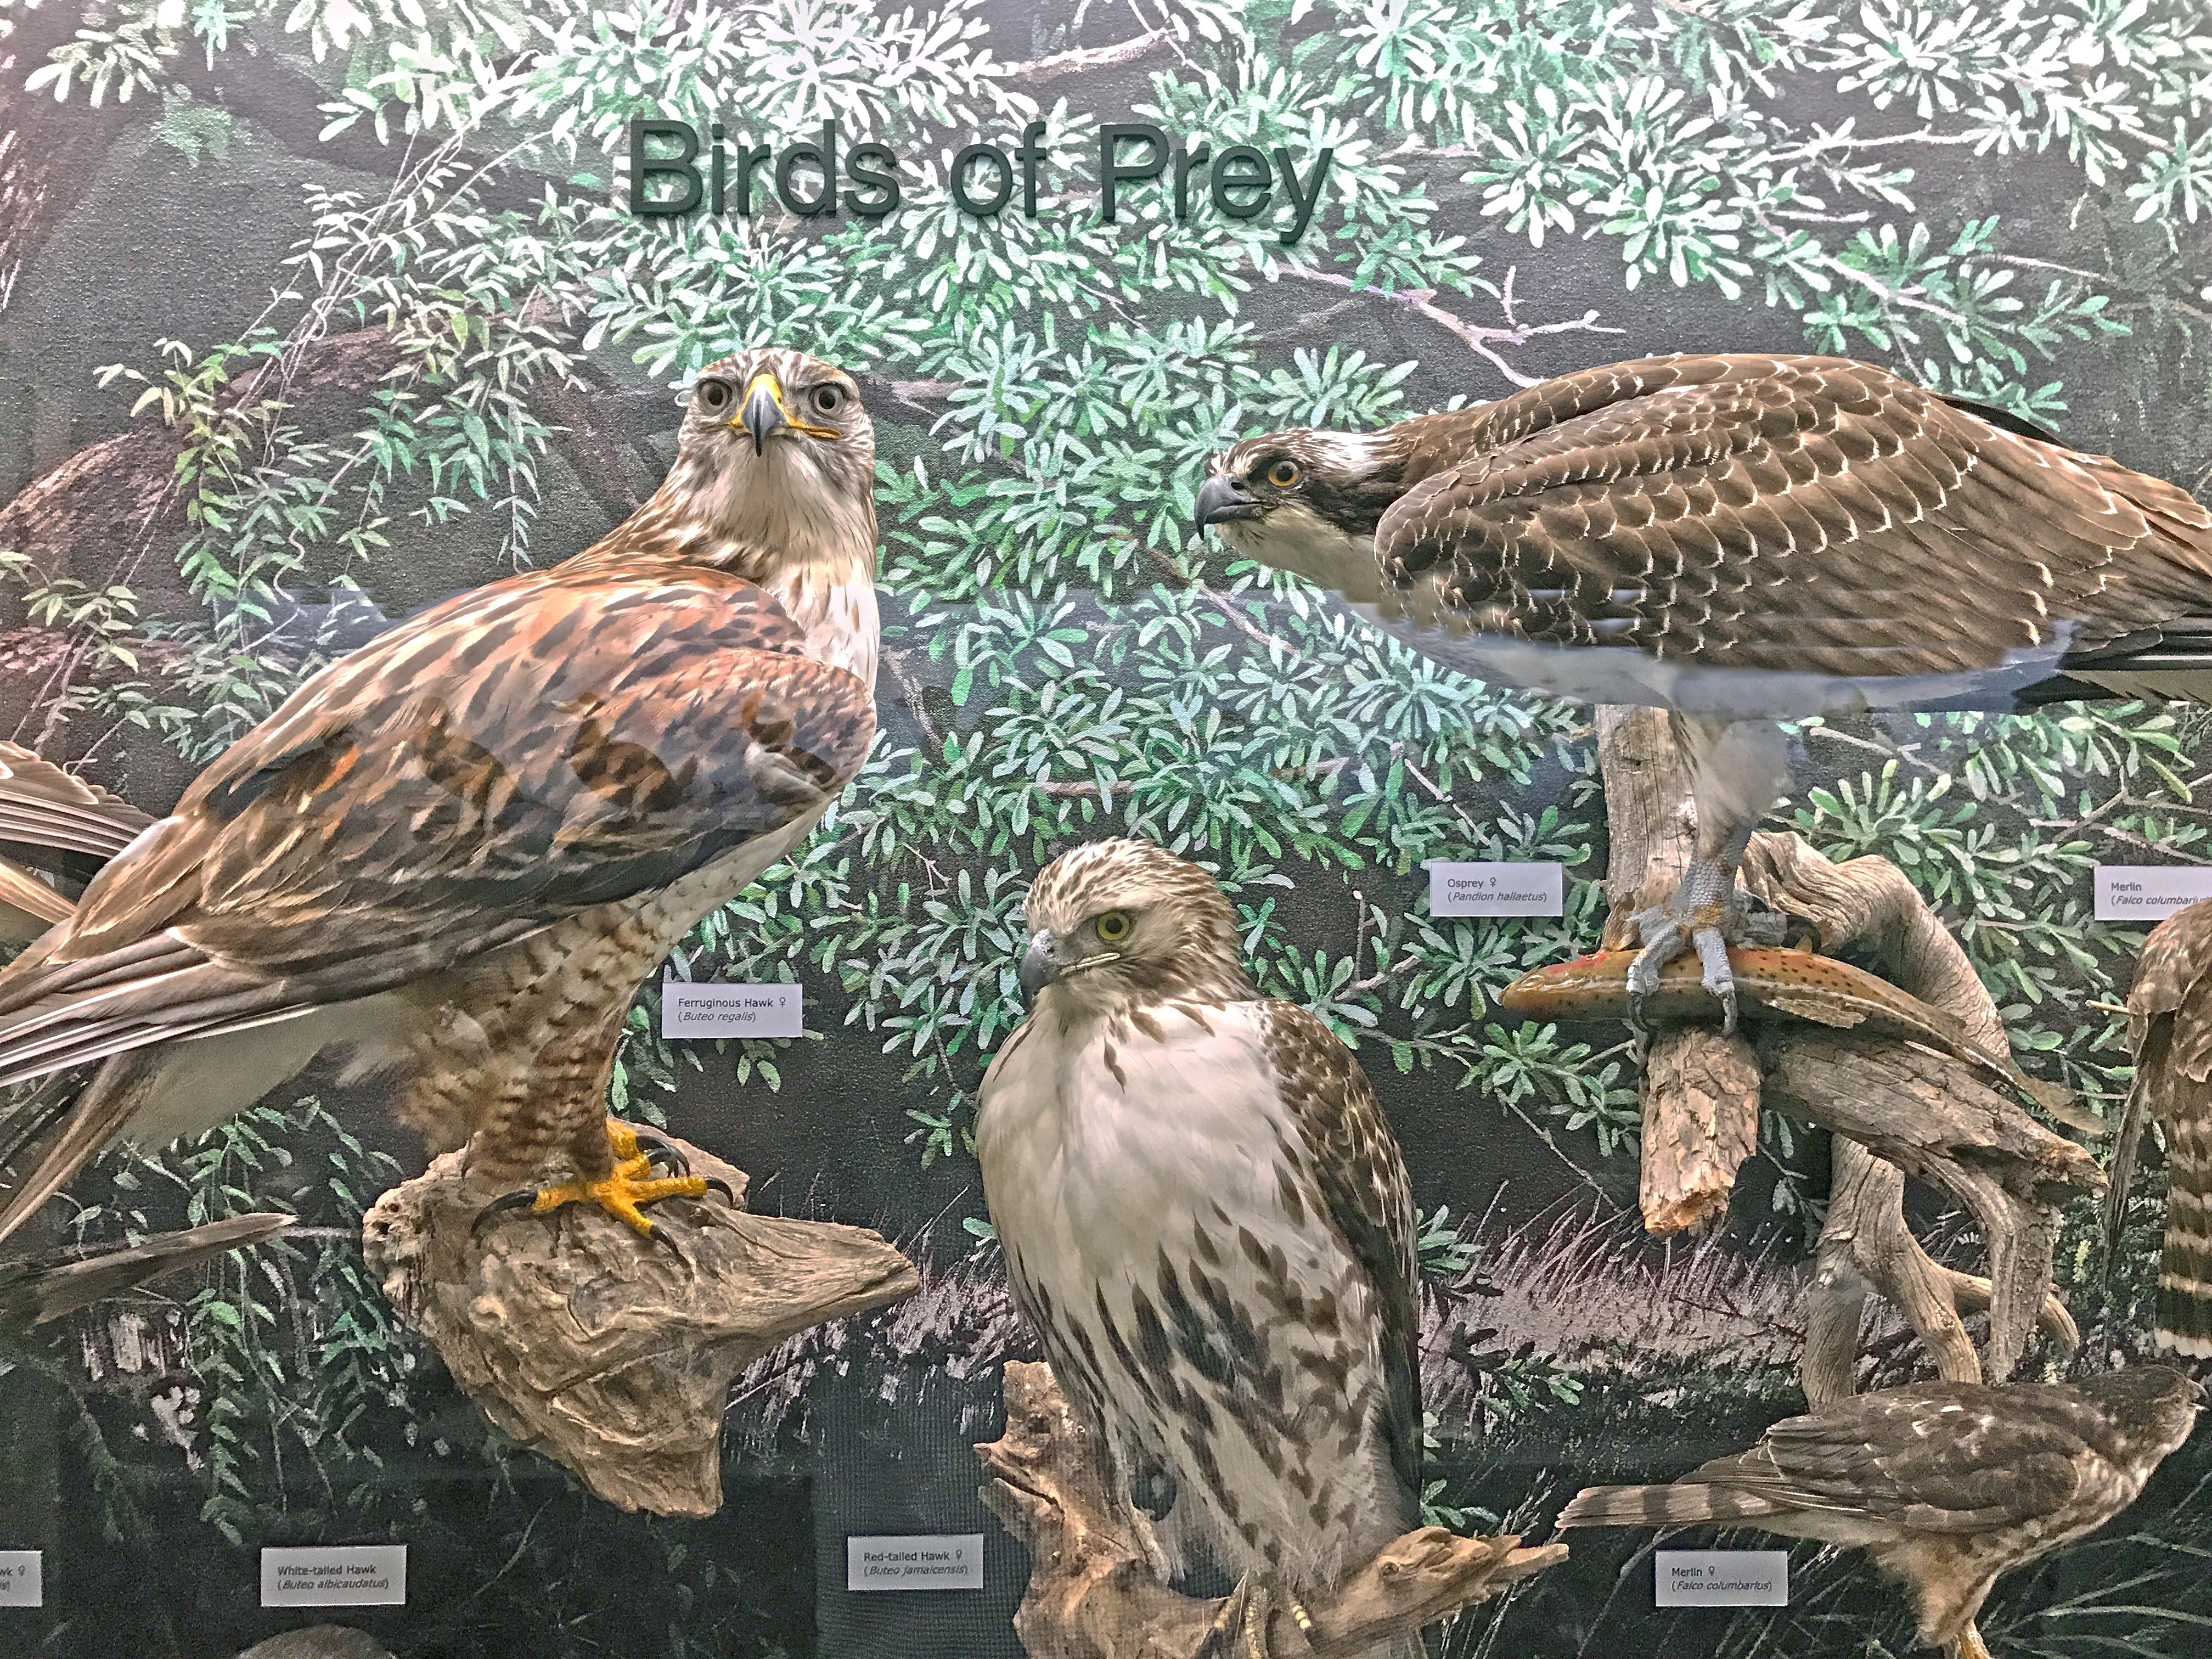 The collection is assembled by groups, such as birds of prey.